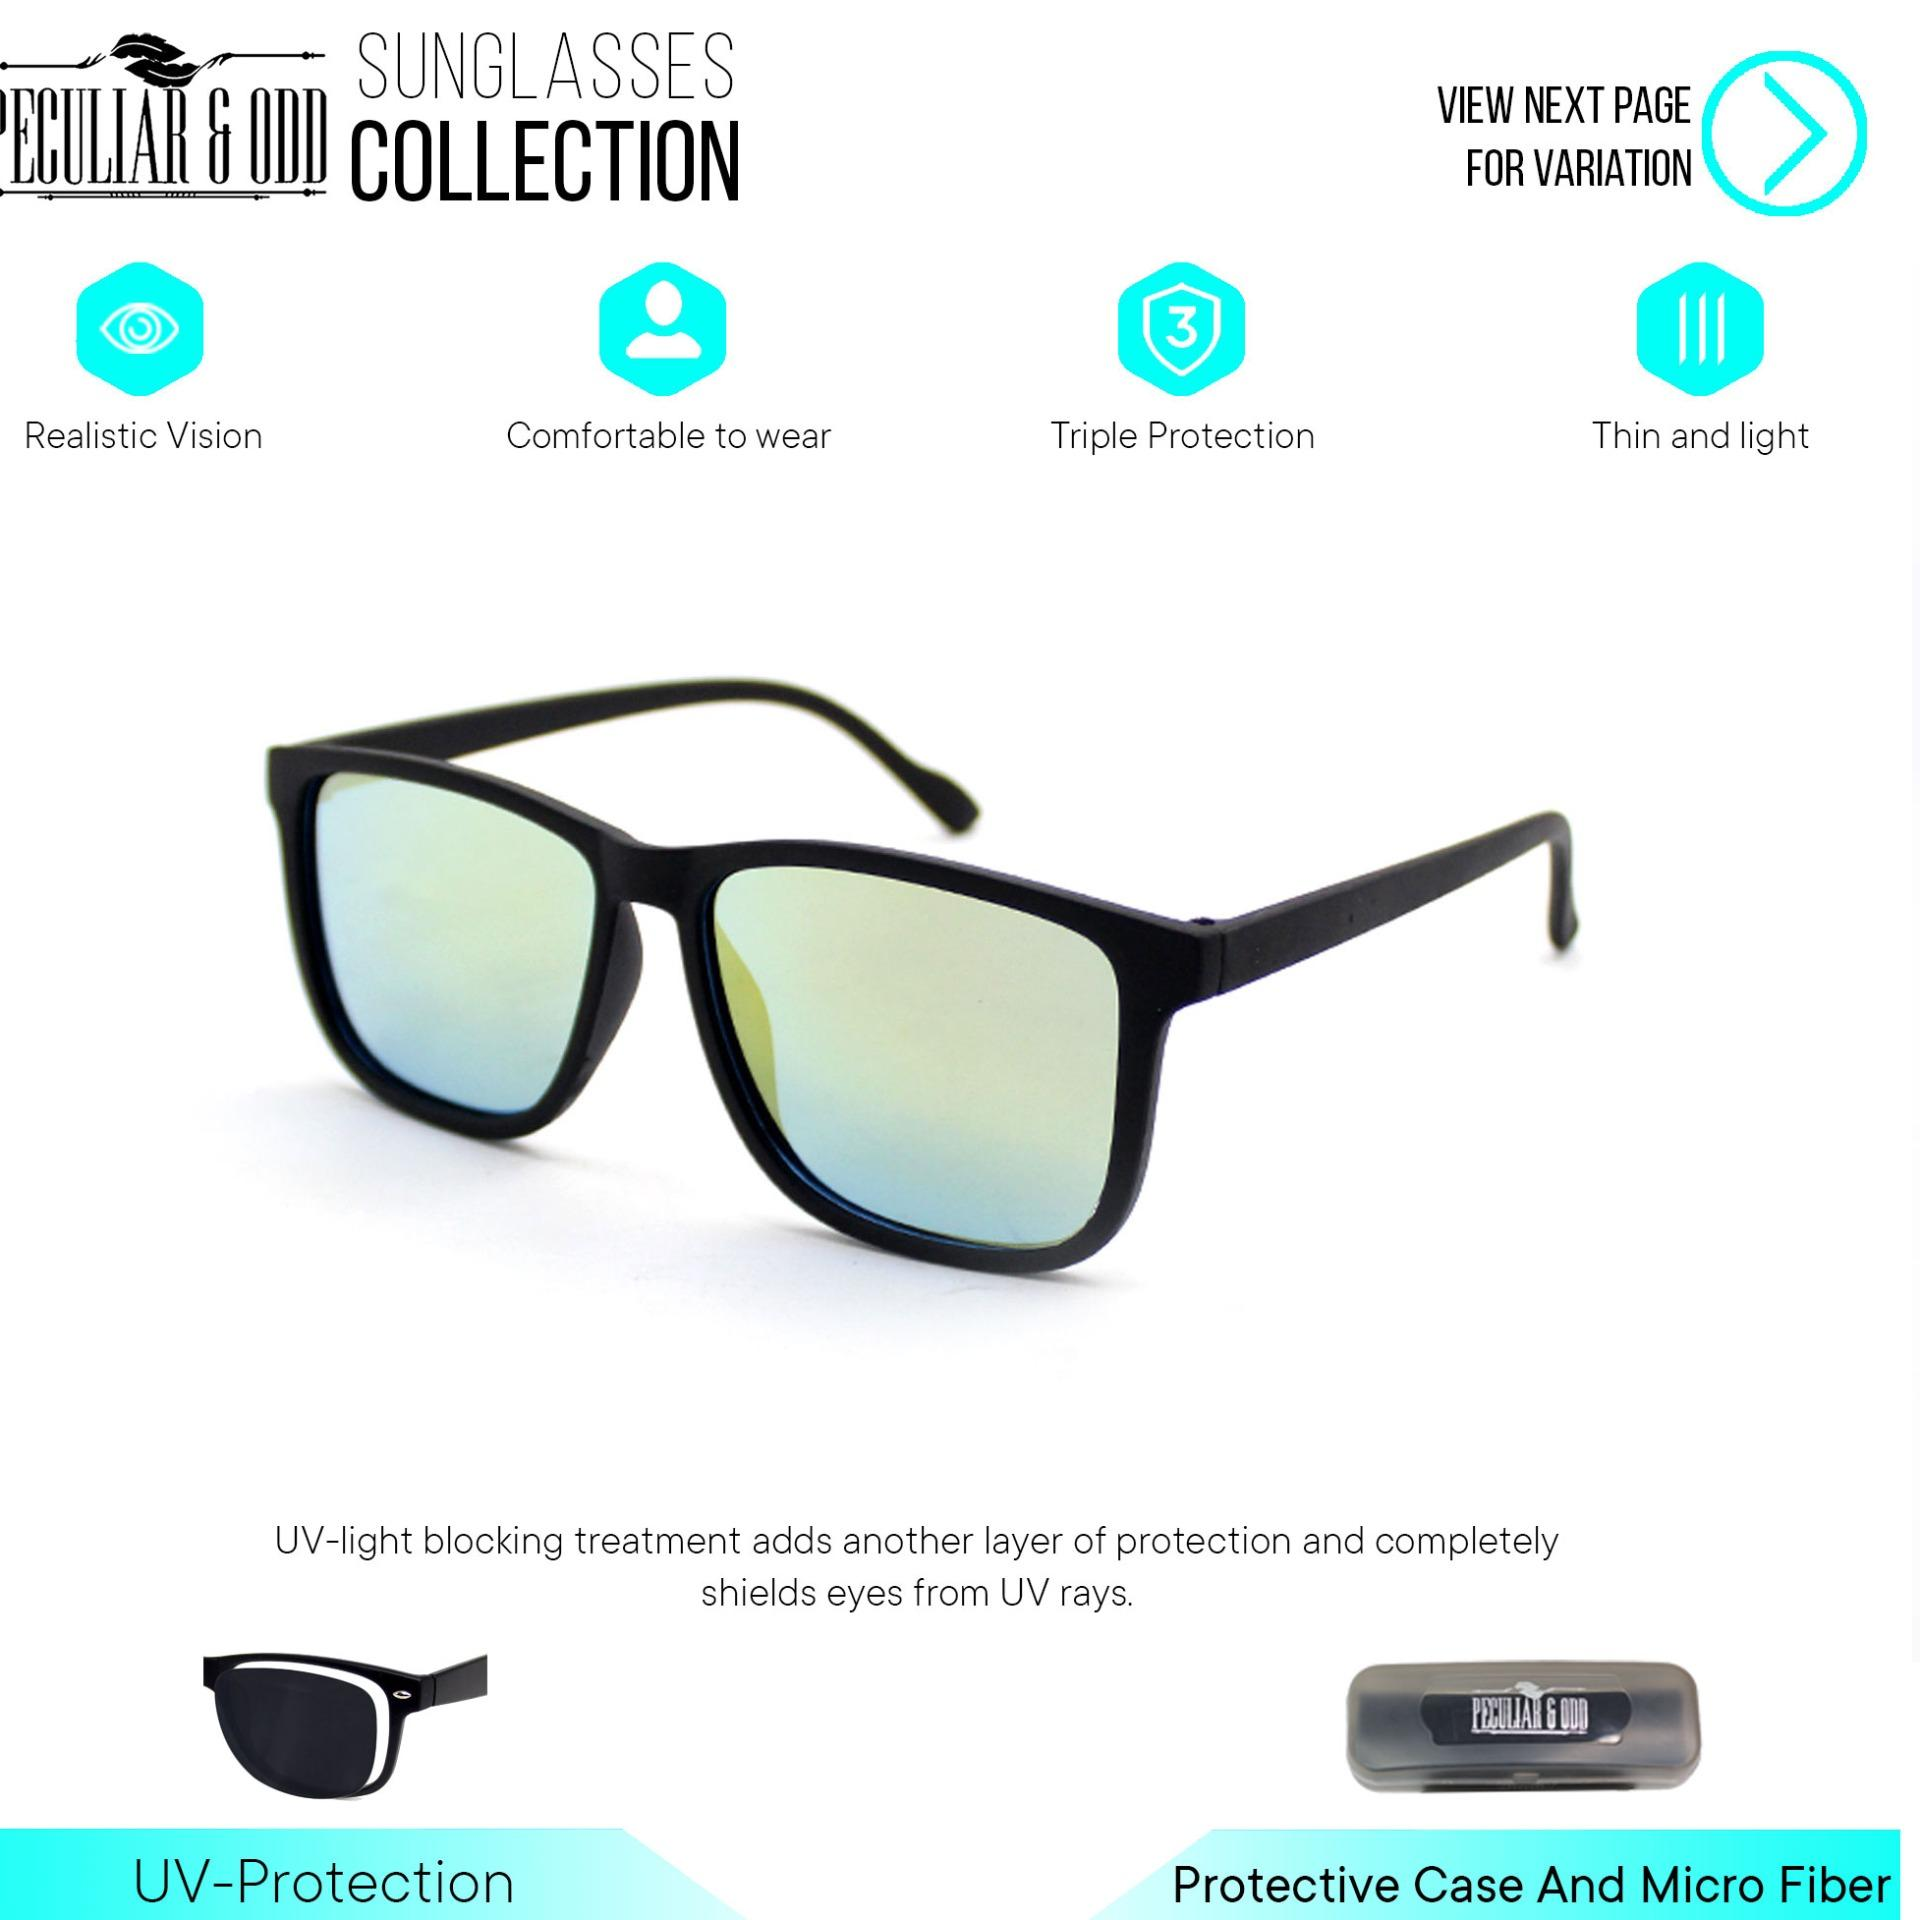 f1de9fe5a Peculiar Oversized Square Classic Sunglass 3476 Unisex Eyewear Shades-  Peculiar and Odd Collection